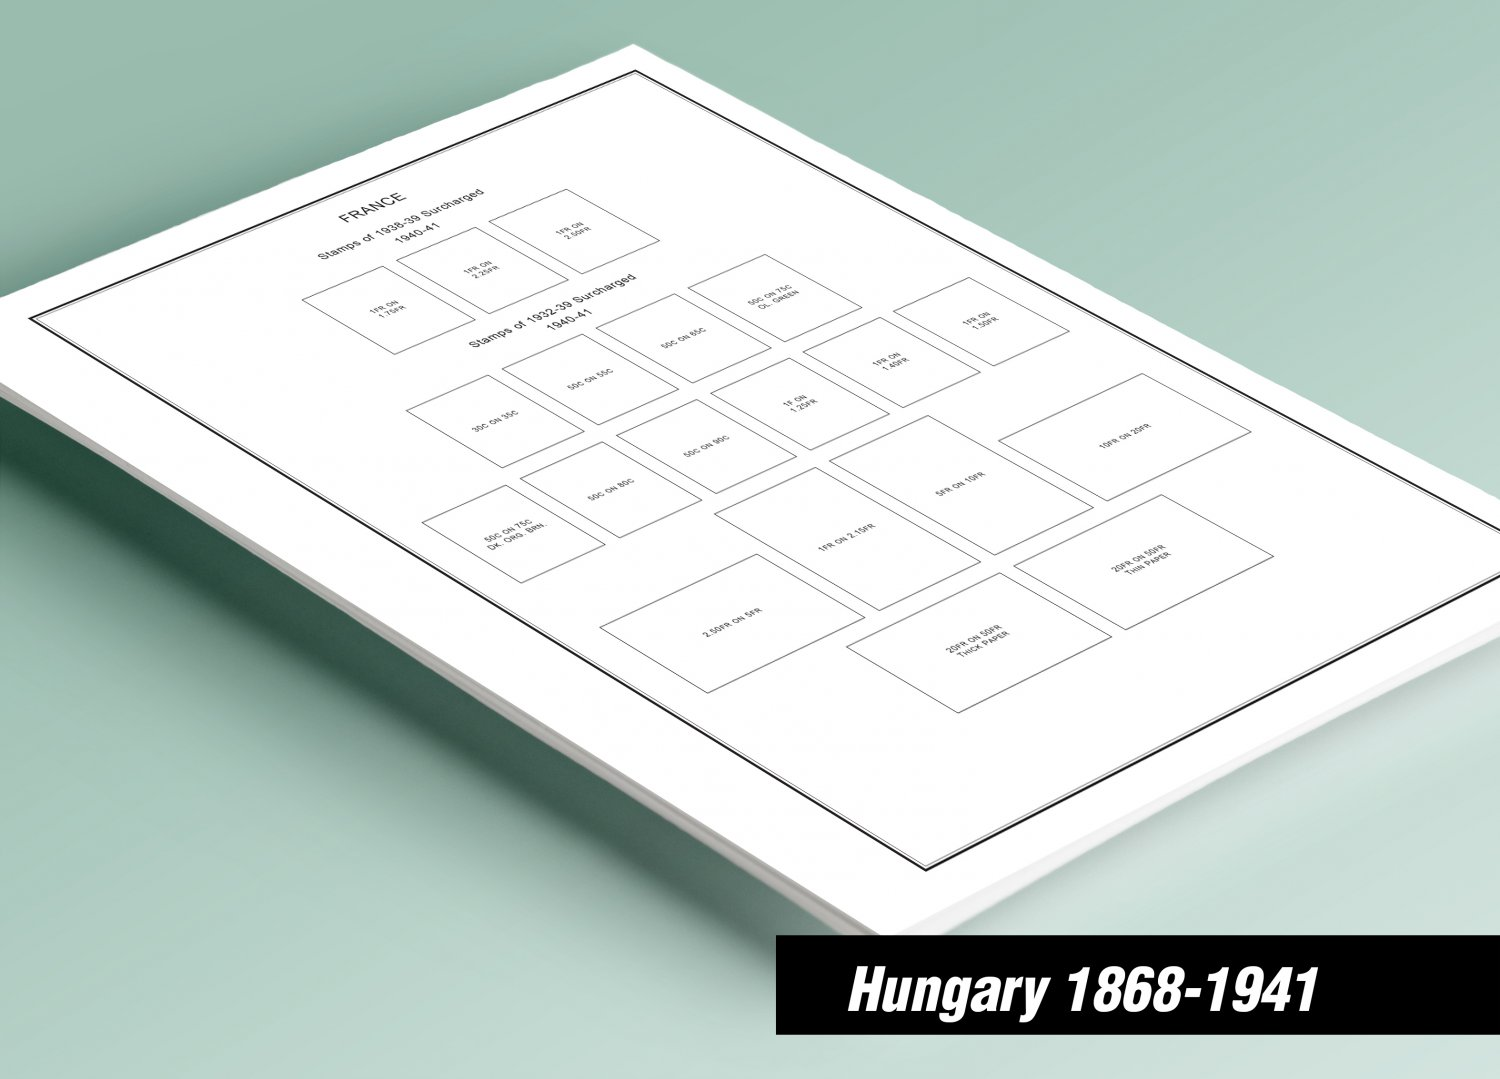 PRINTED HUNGARY [CLASS.] 1868-1941 STAMP ALBUM PAGES (115 pages)